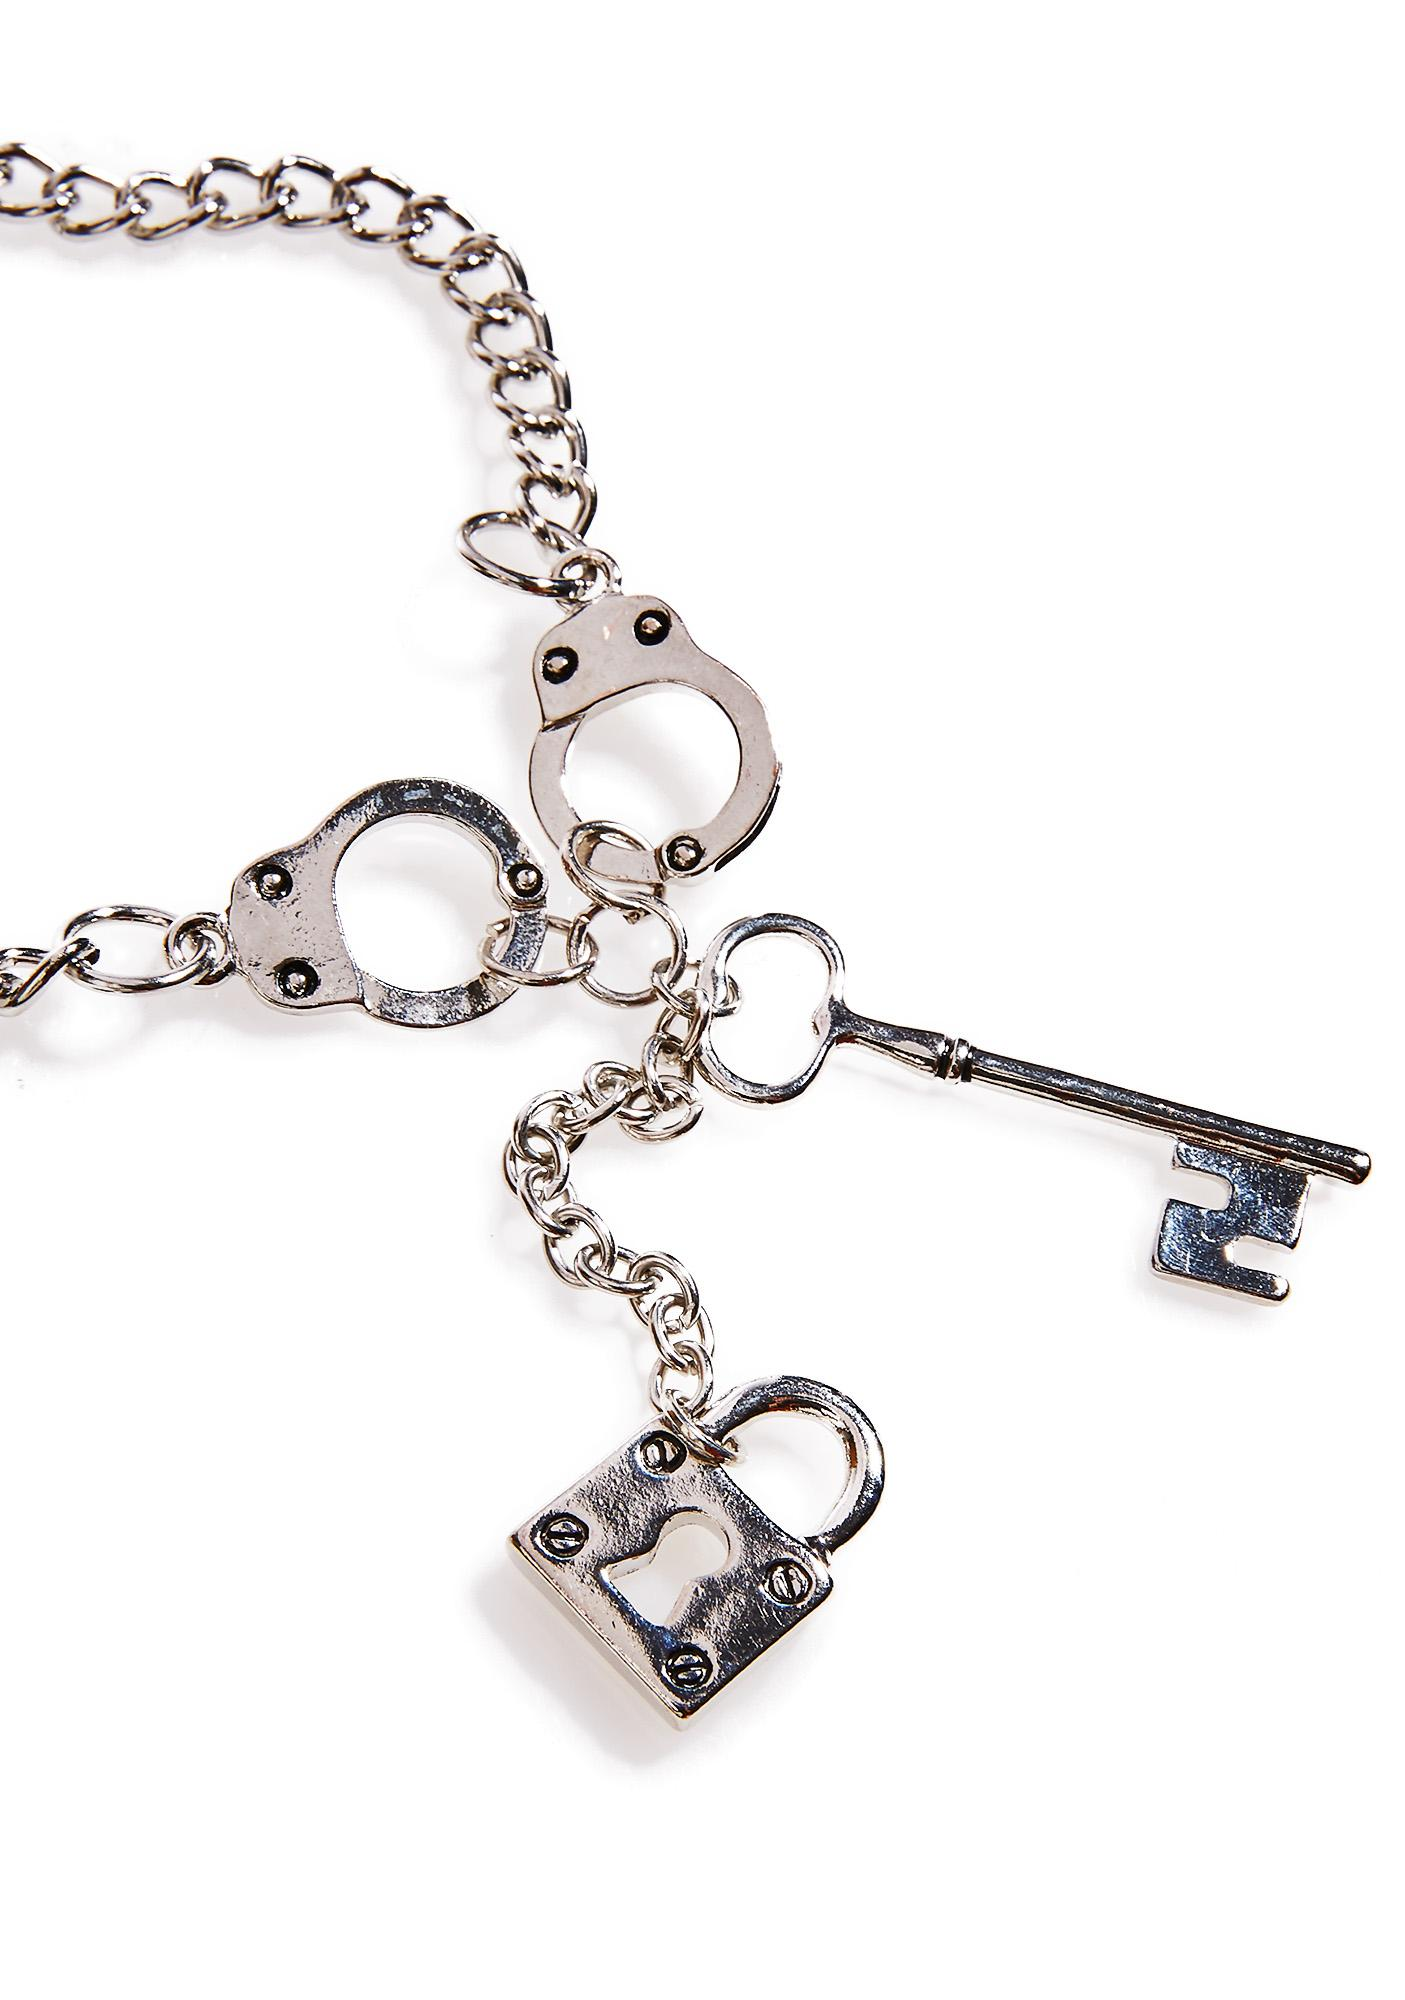 Tethered Lock N Key Necklace